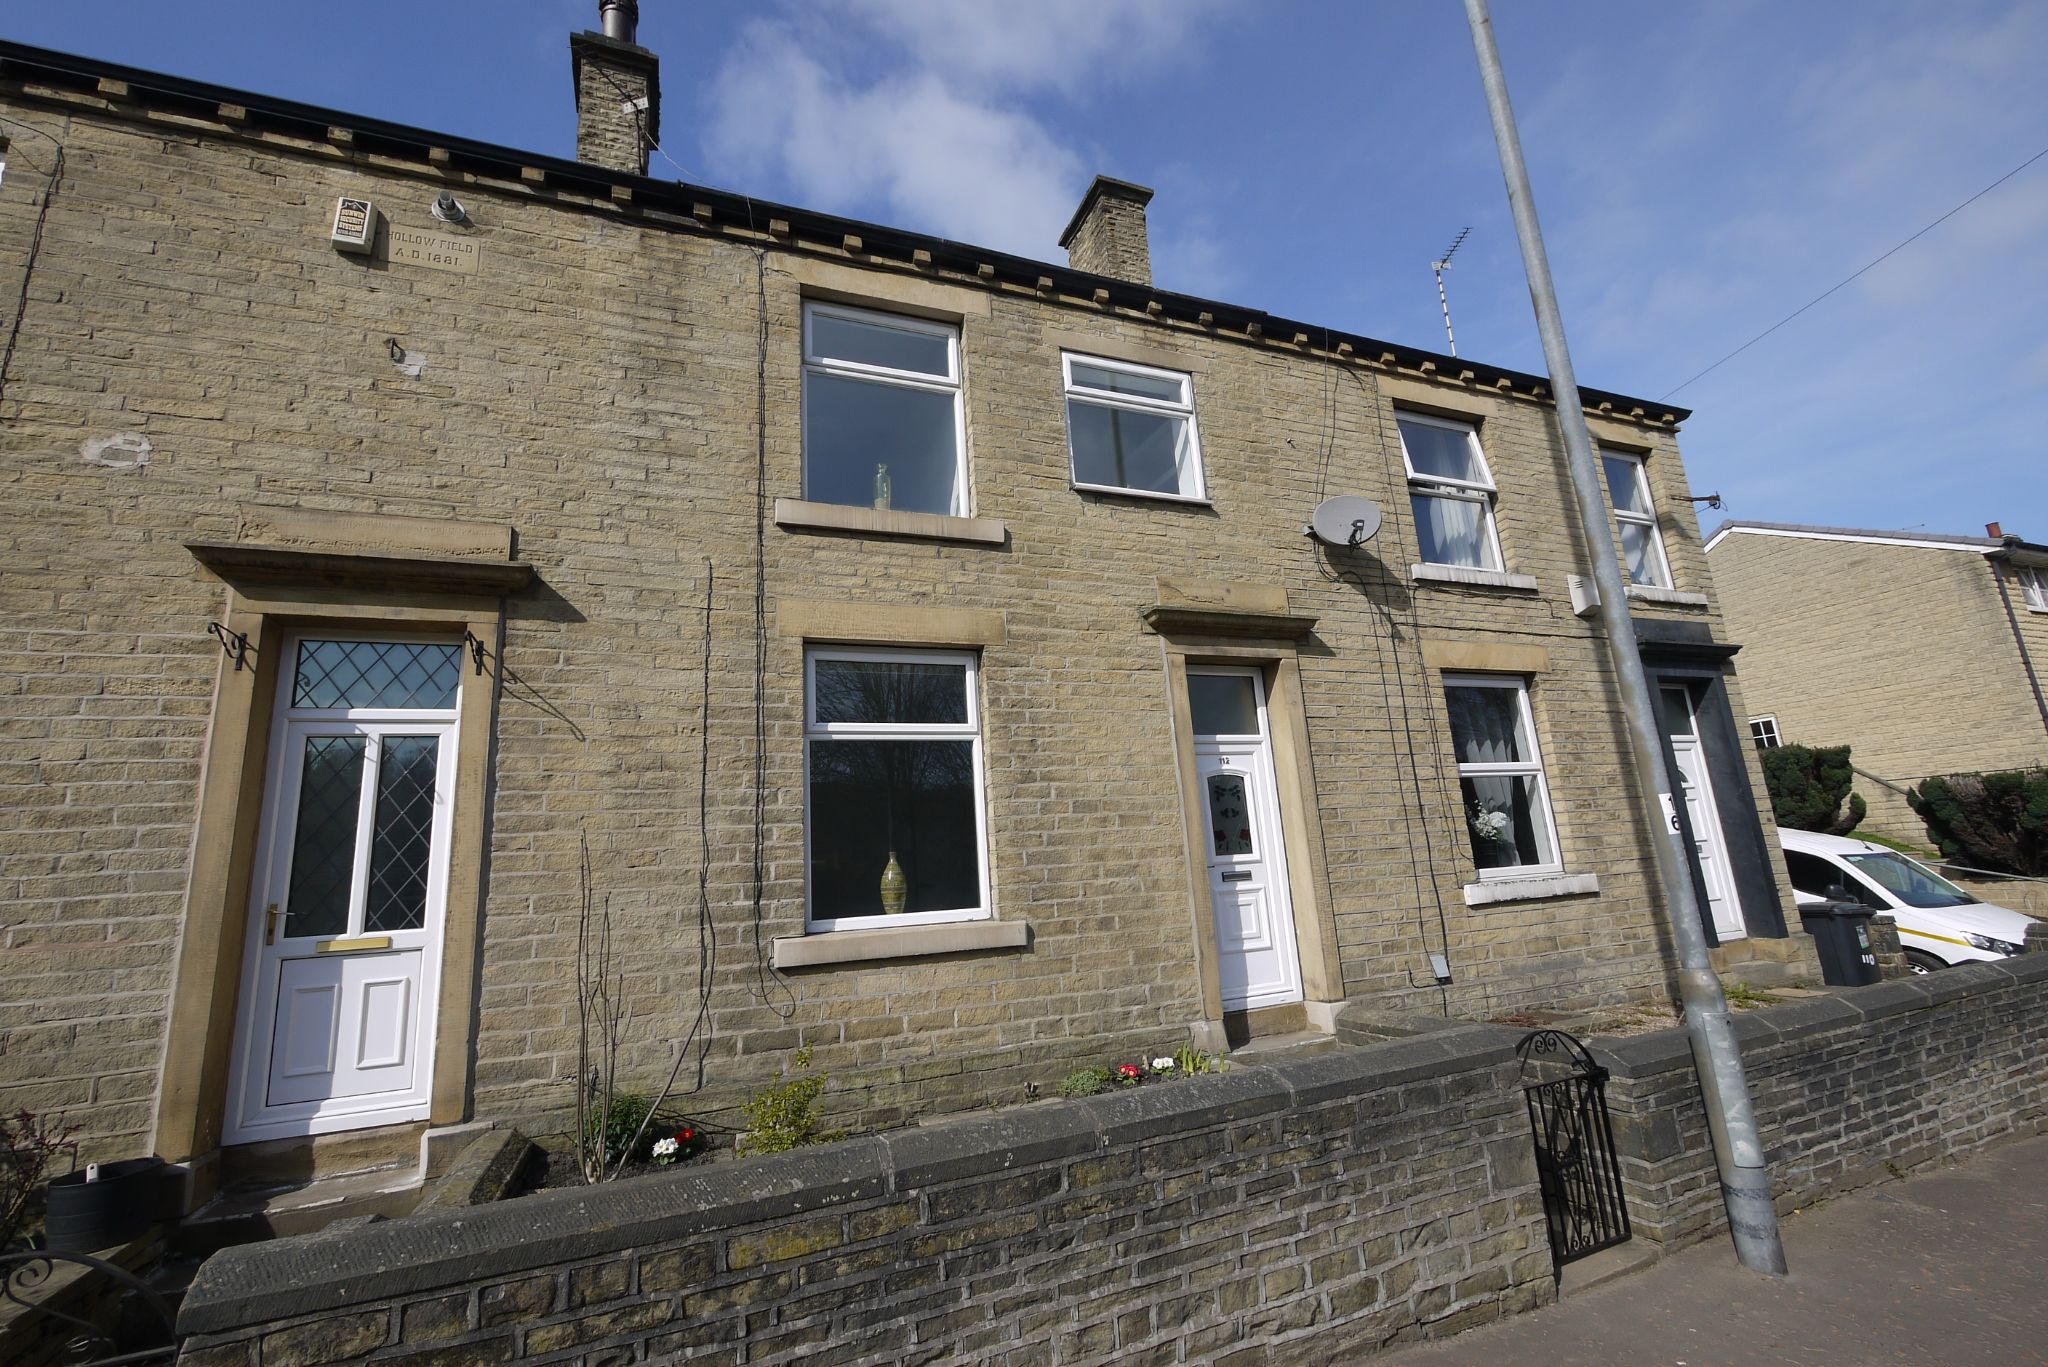 2 bedroom mid terraced house SSTC in Calderdale - Photograph 1.